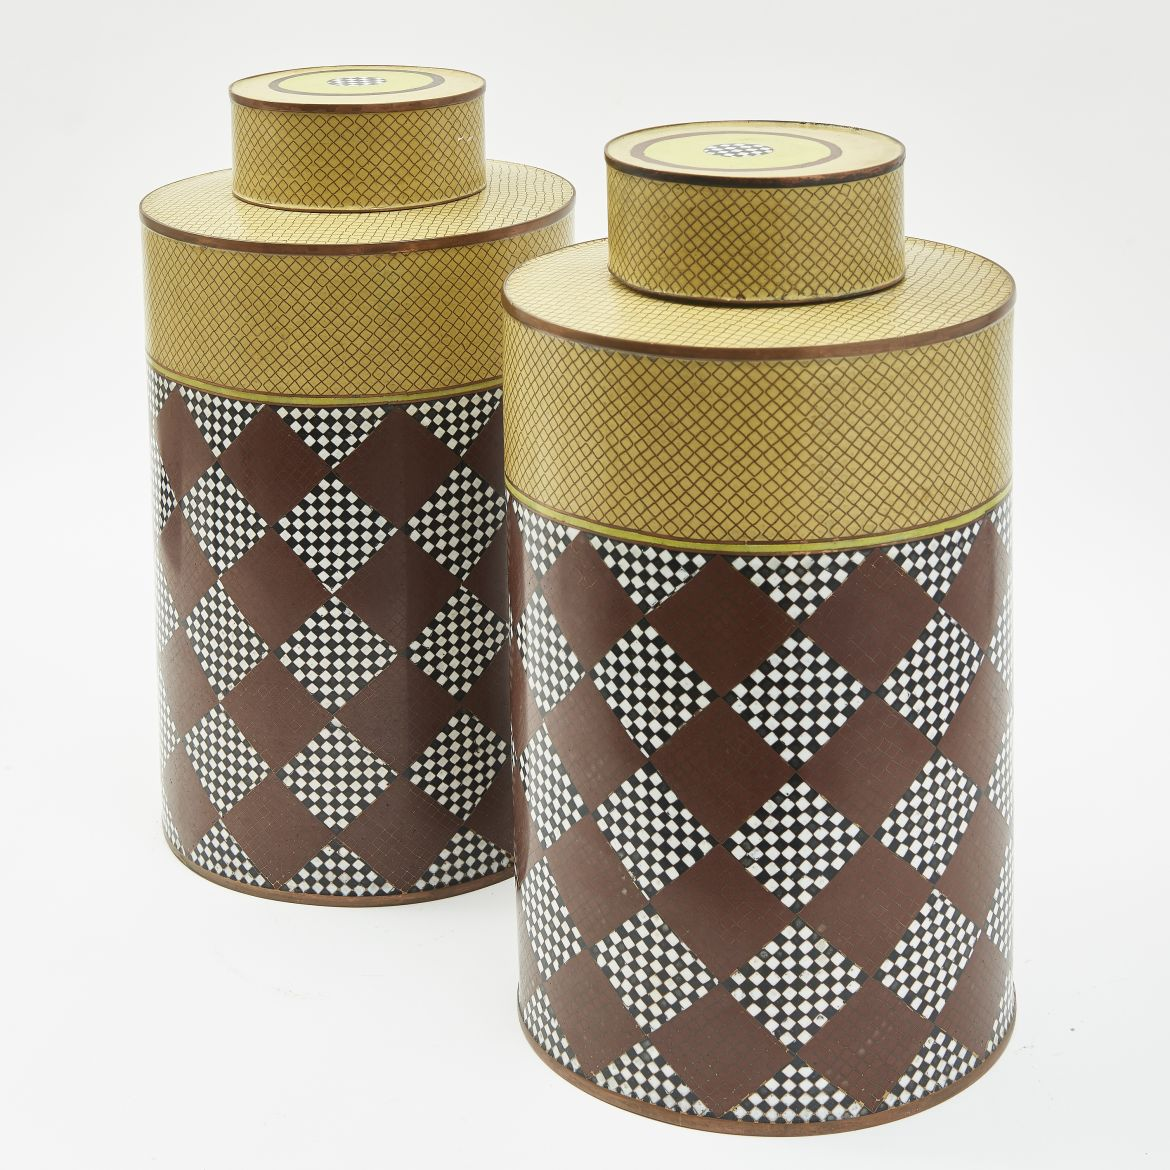 Large French Cloisonné Enamel Tea Canisters